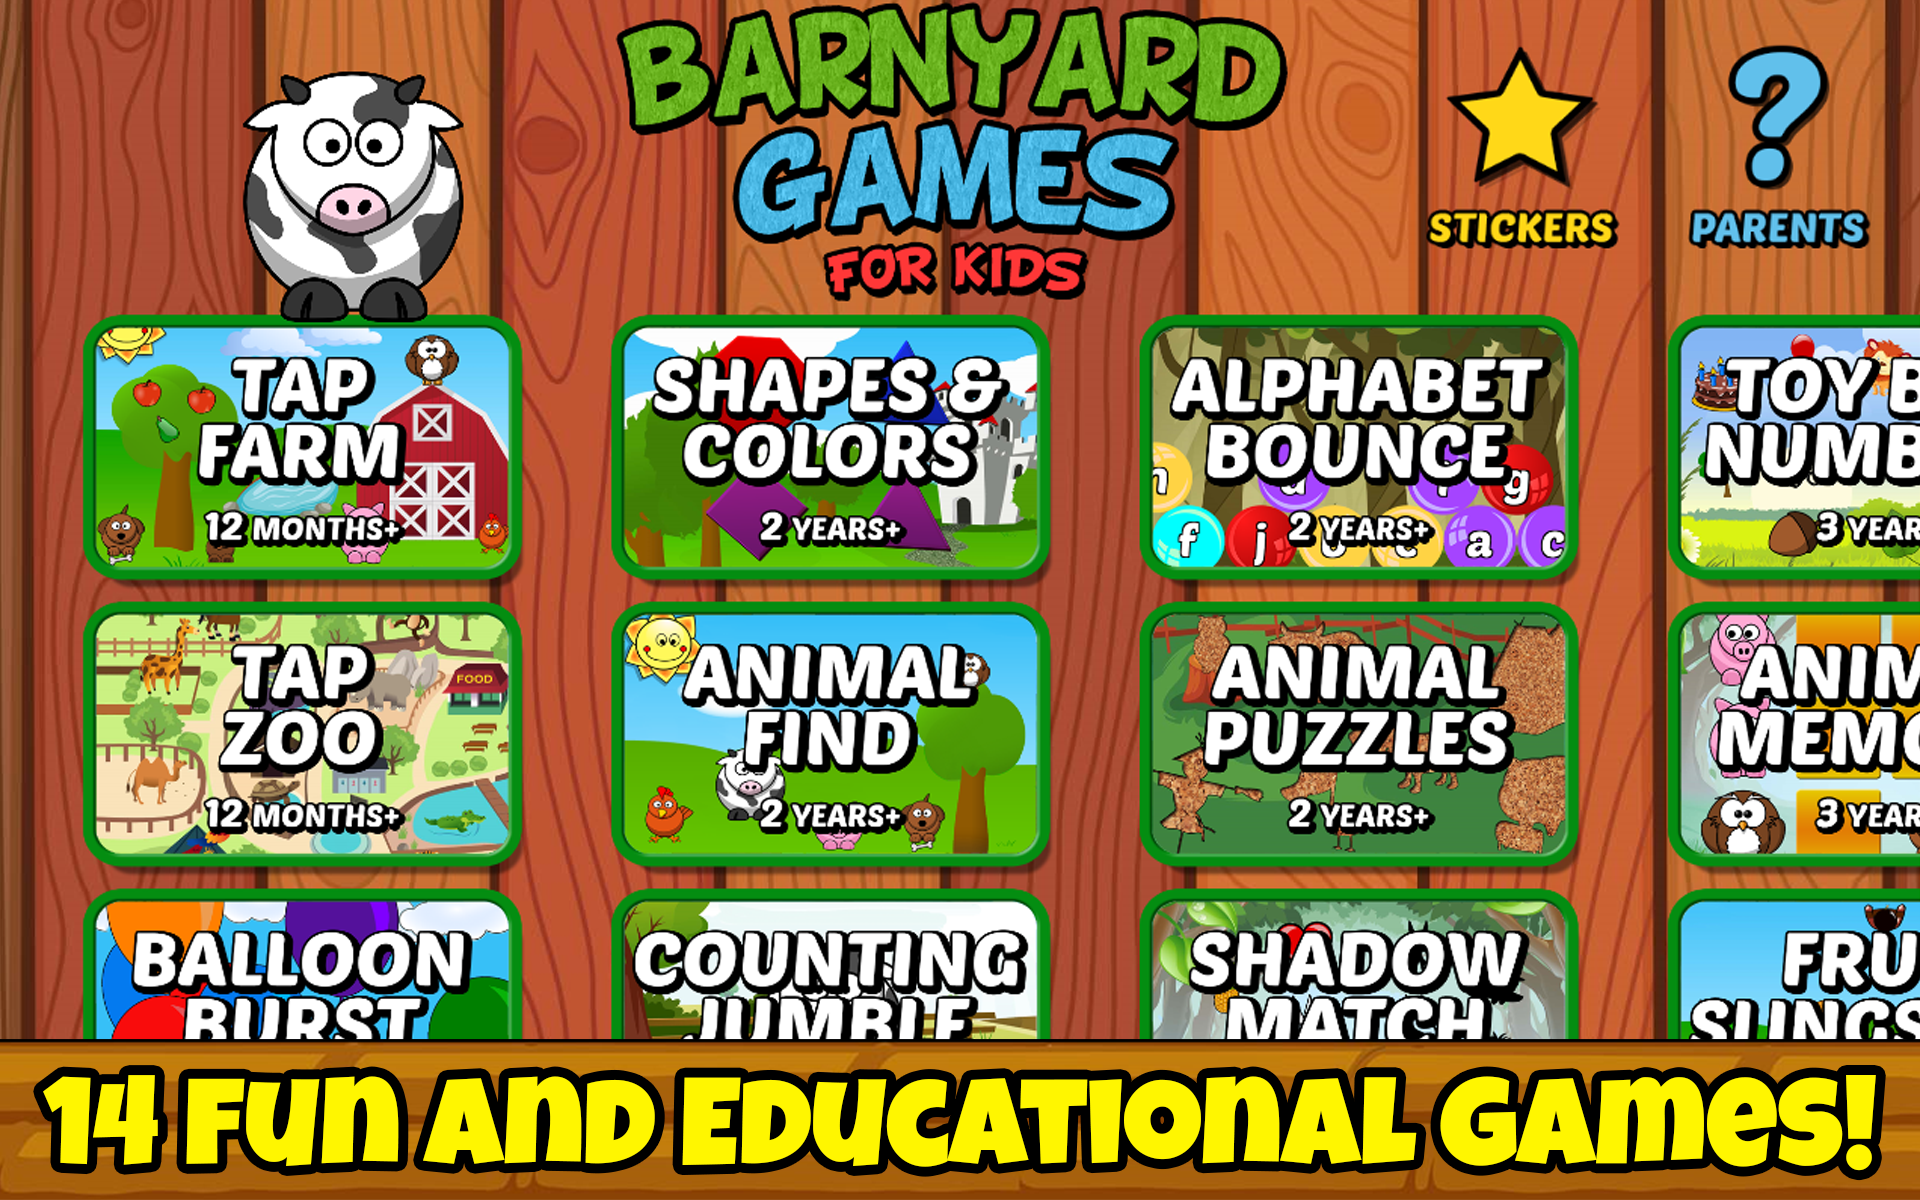 Amazon Barnyard Games For Kids Free Appstore Android